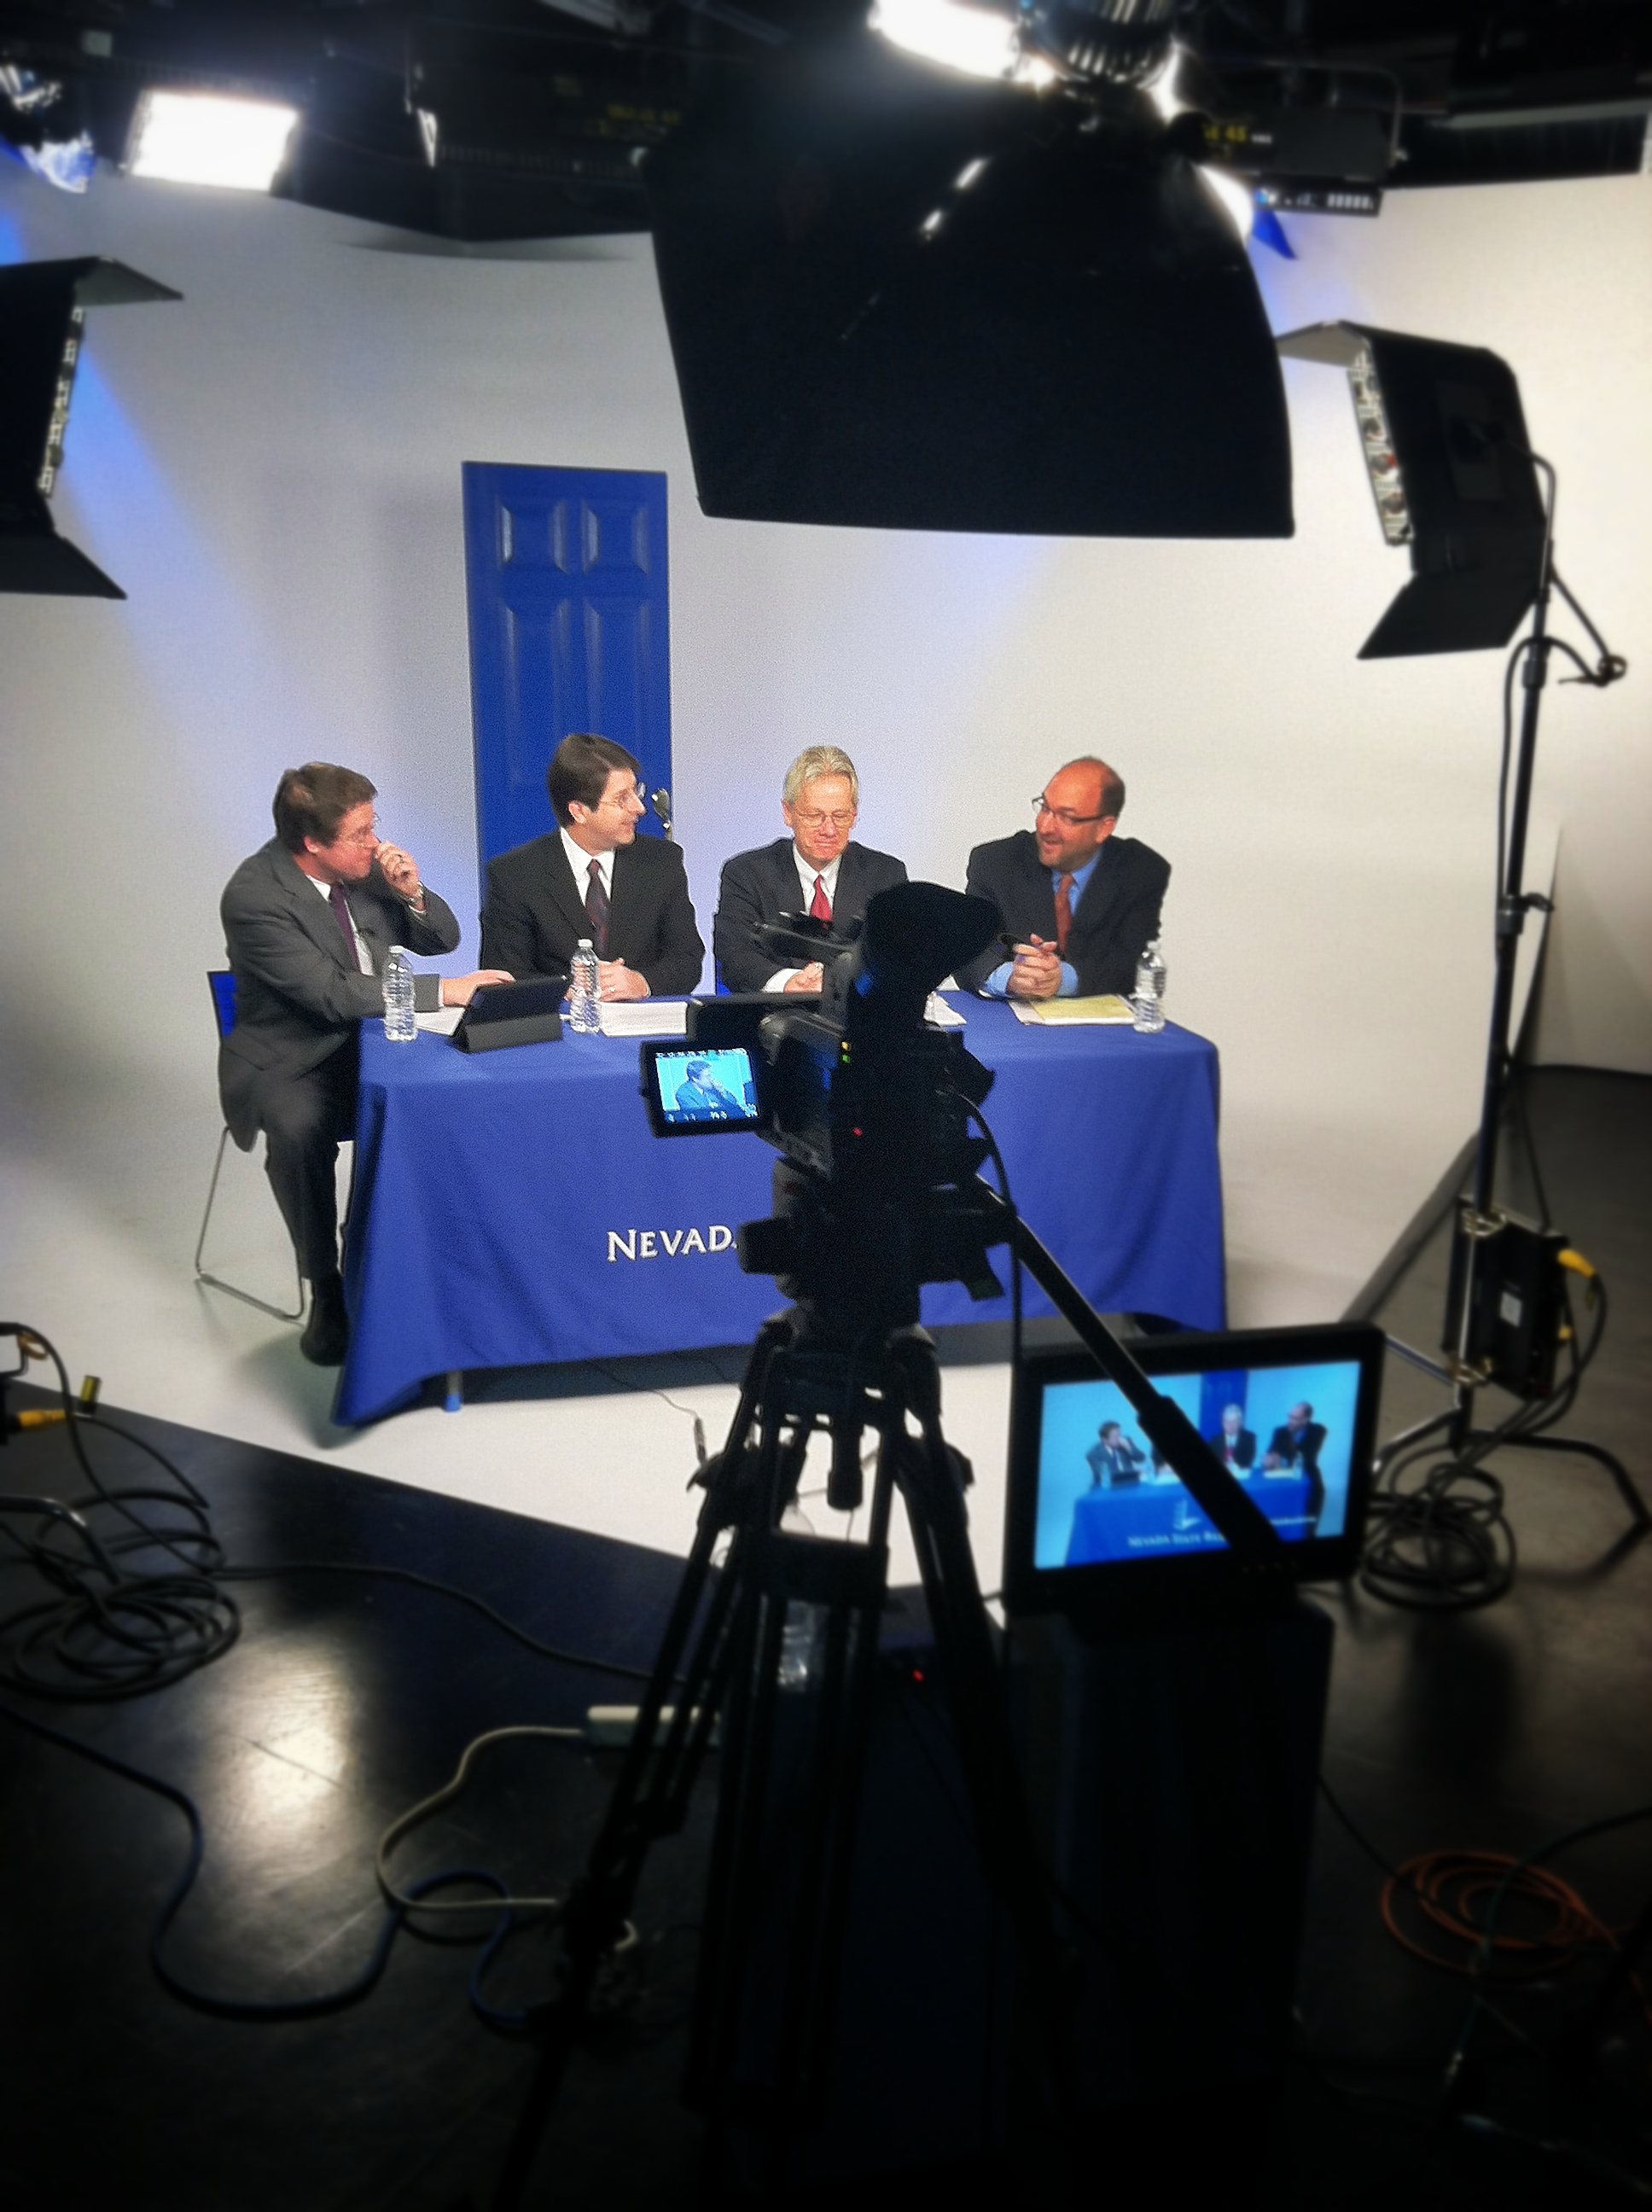 Shooting the webcast for Nevada State Bank.